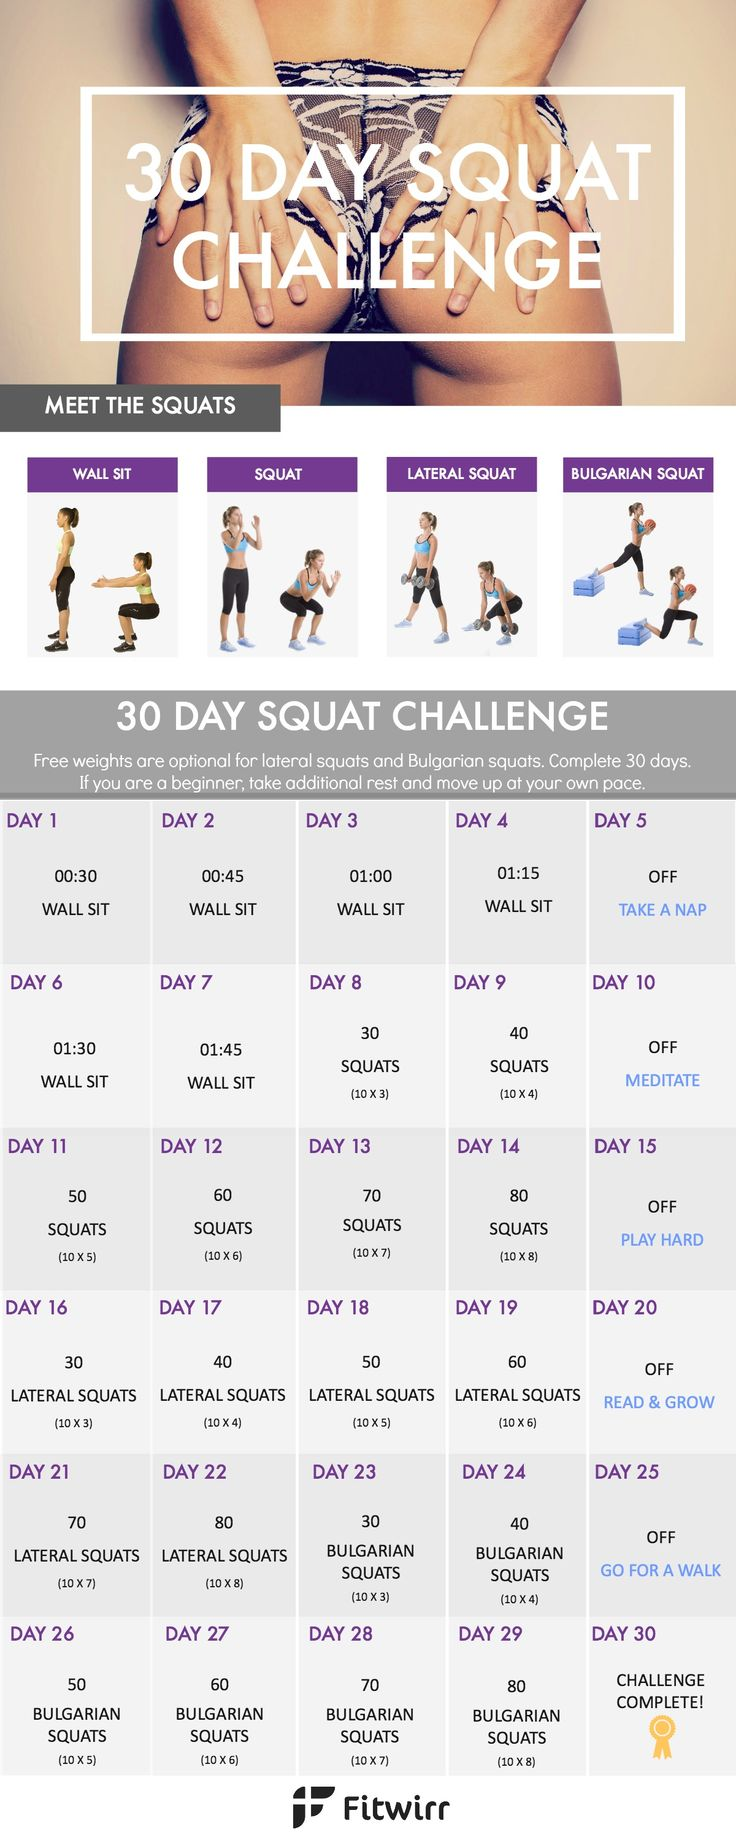 nike sports shoes united states 30 Day Squat Challenge